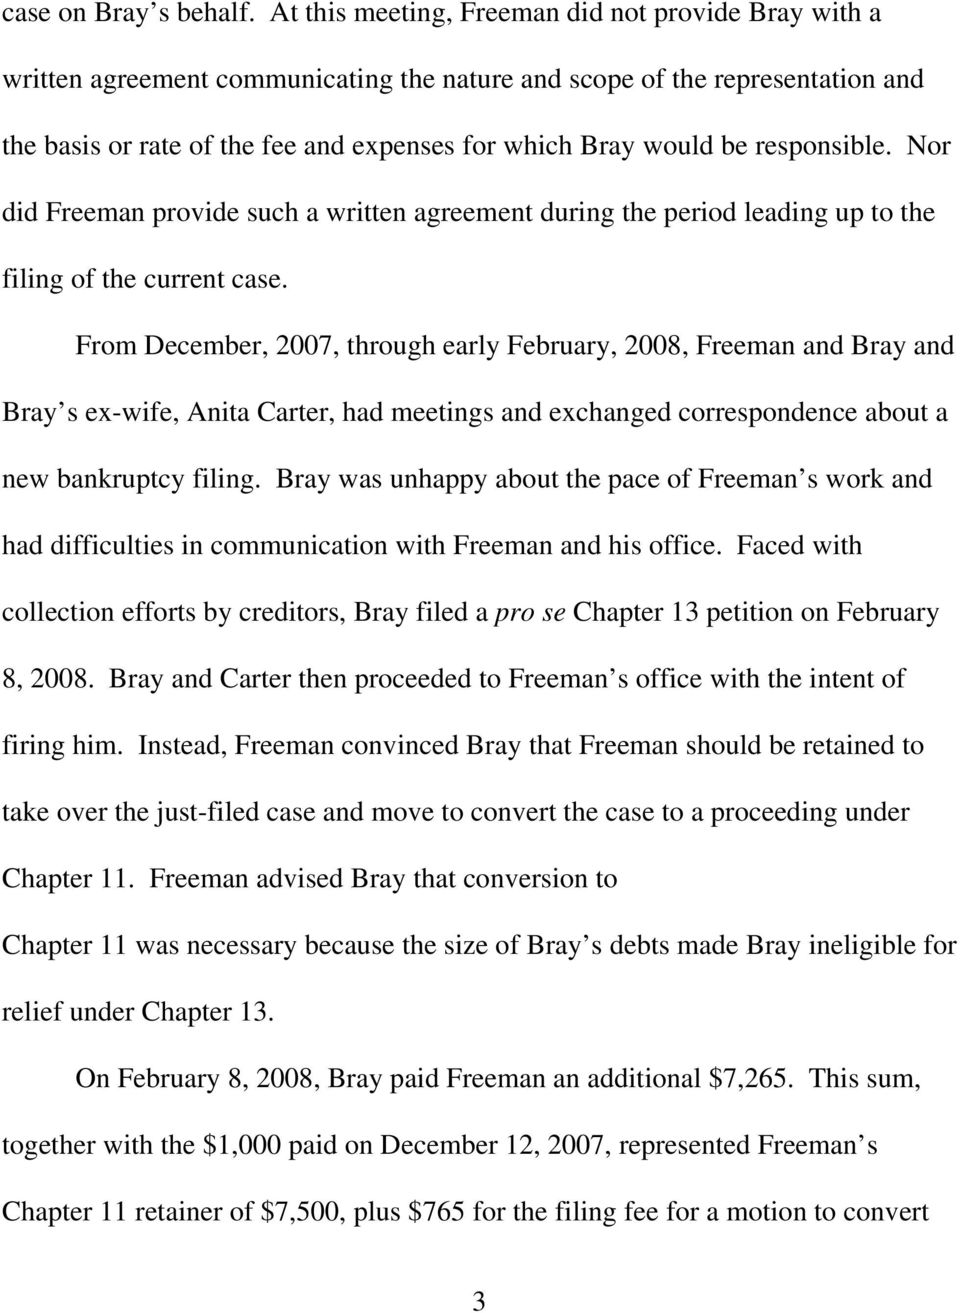 responsible. Nor did Freeman provide such a written agreement during the period leading up to the filing of the current case.